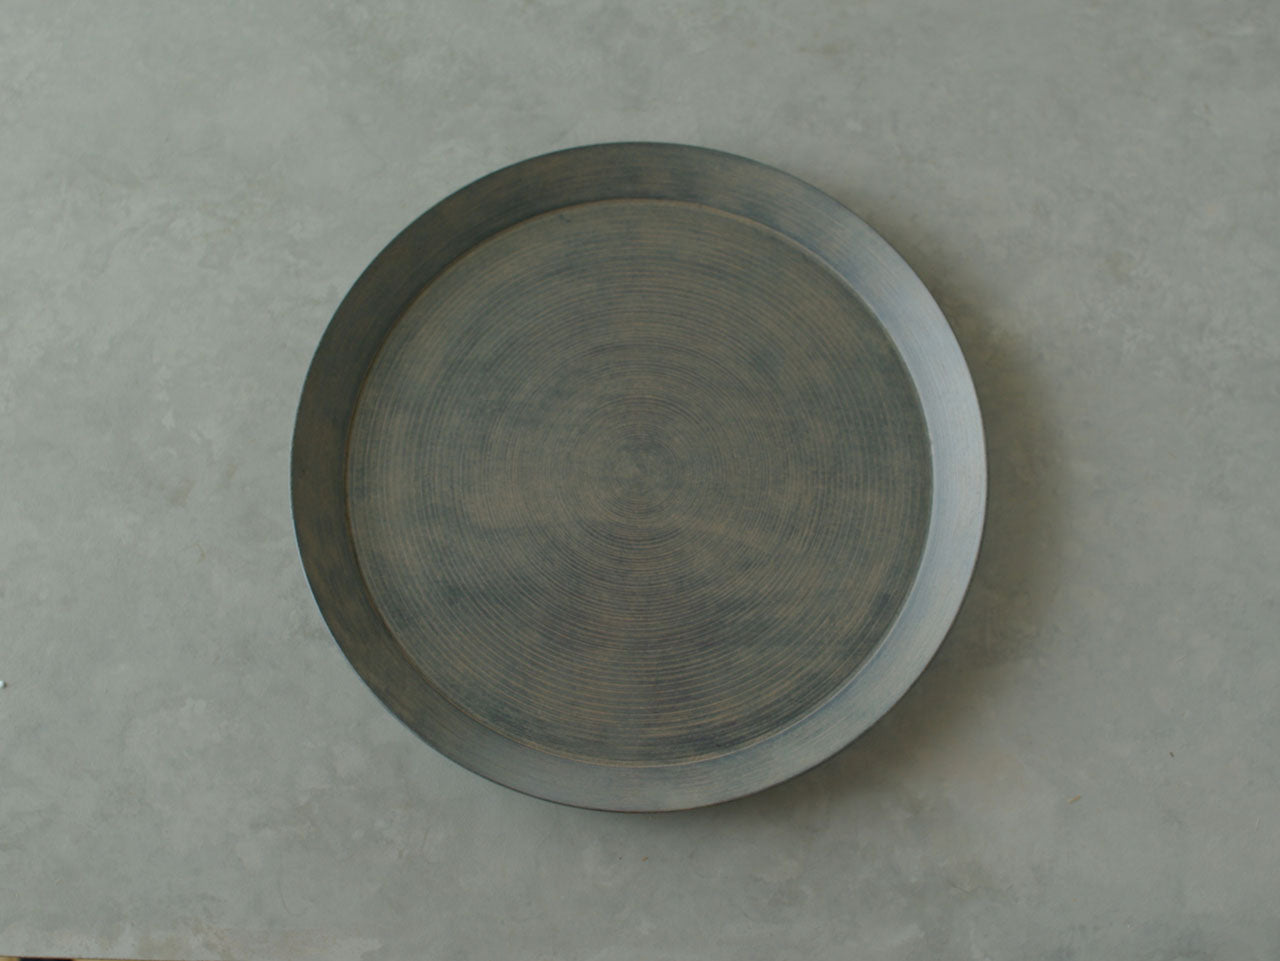 田澤祐介 丸盆 拭漆 薄白/ Round tray wiped-lacquer finish Pale white, by Yusuke Tazawa